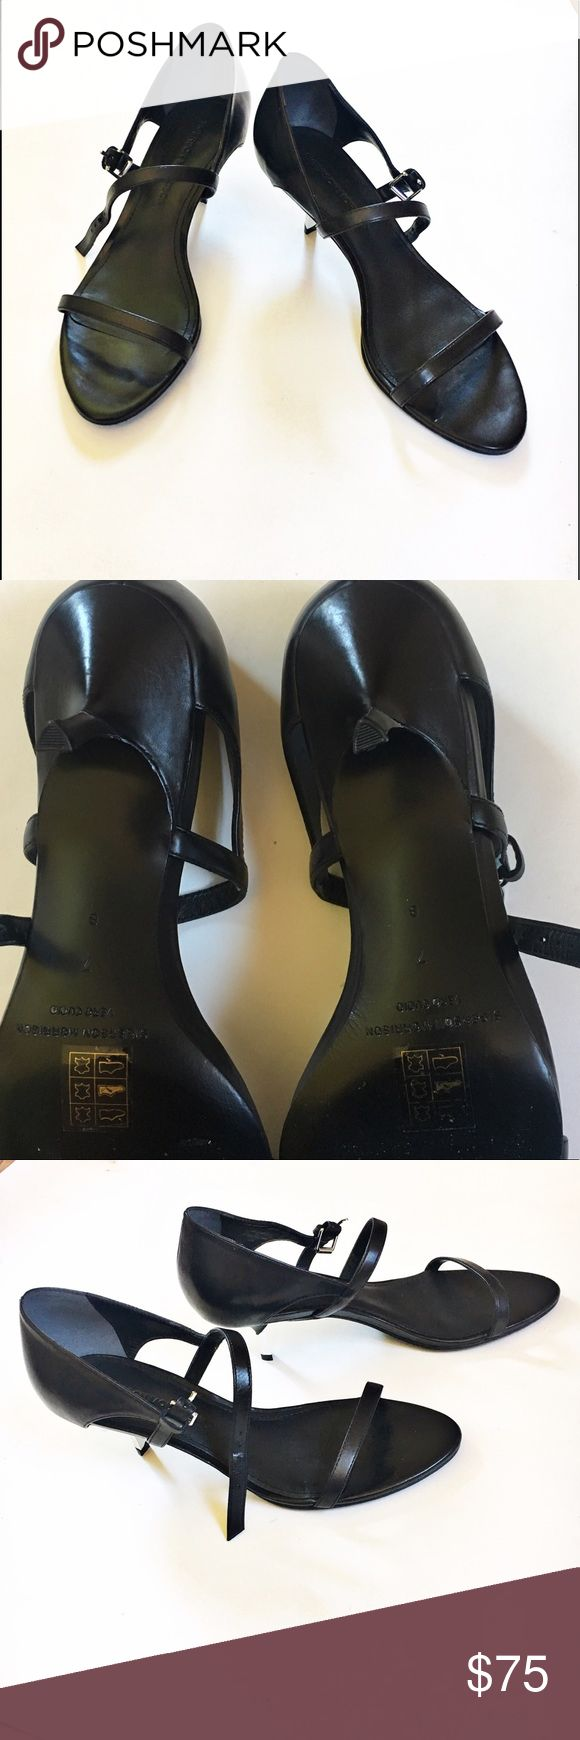 Sigerson Morrison black small heels These are brand new with out the box. There are absolutely no flaws, they have only been tried on once. These are such a gorgeous matte black that is perfect for everything! There is a slight heel approx 1.5 inches Sigerson Morrison Shoes Heels